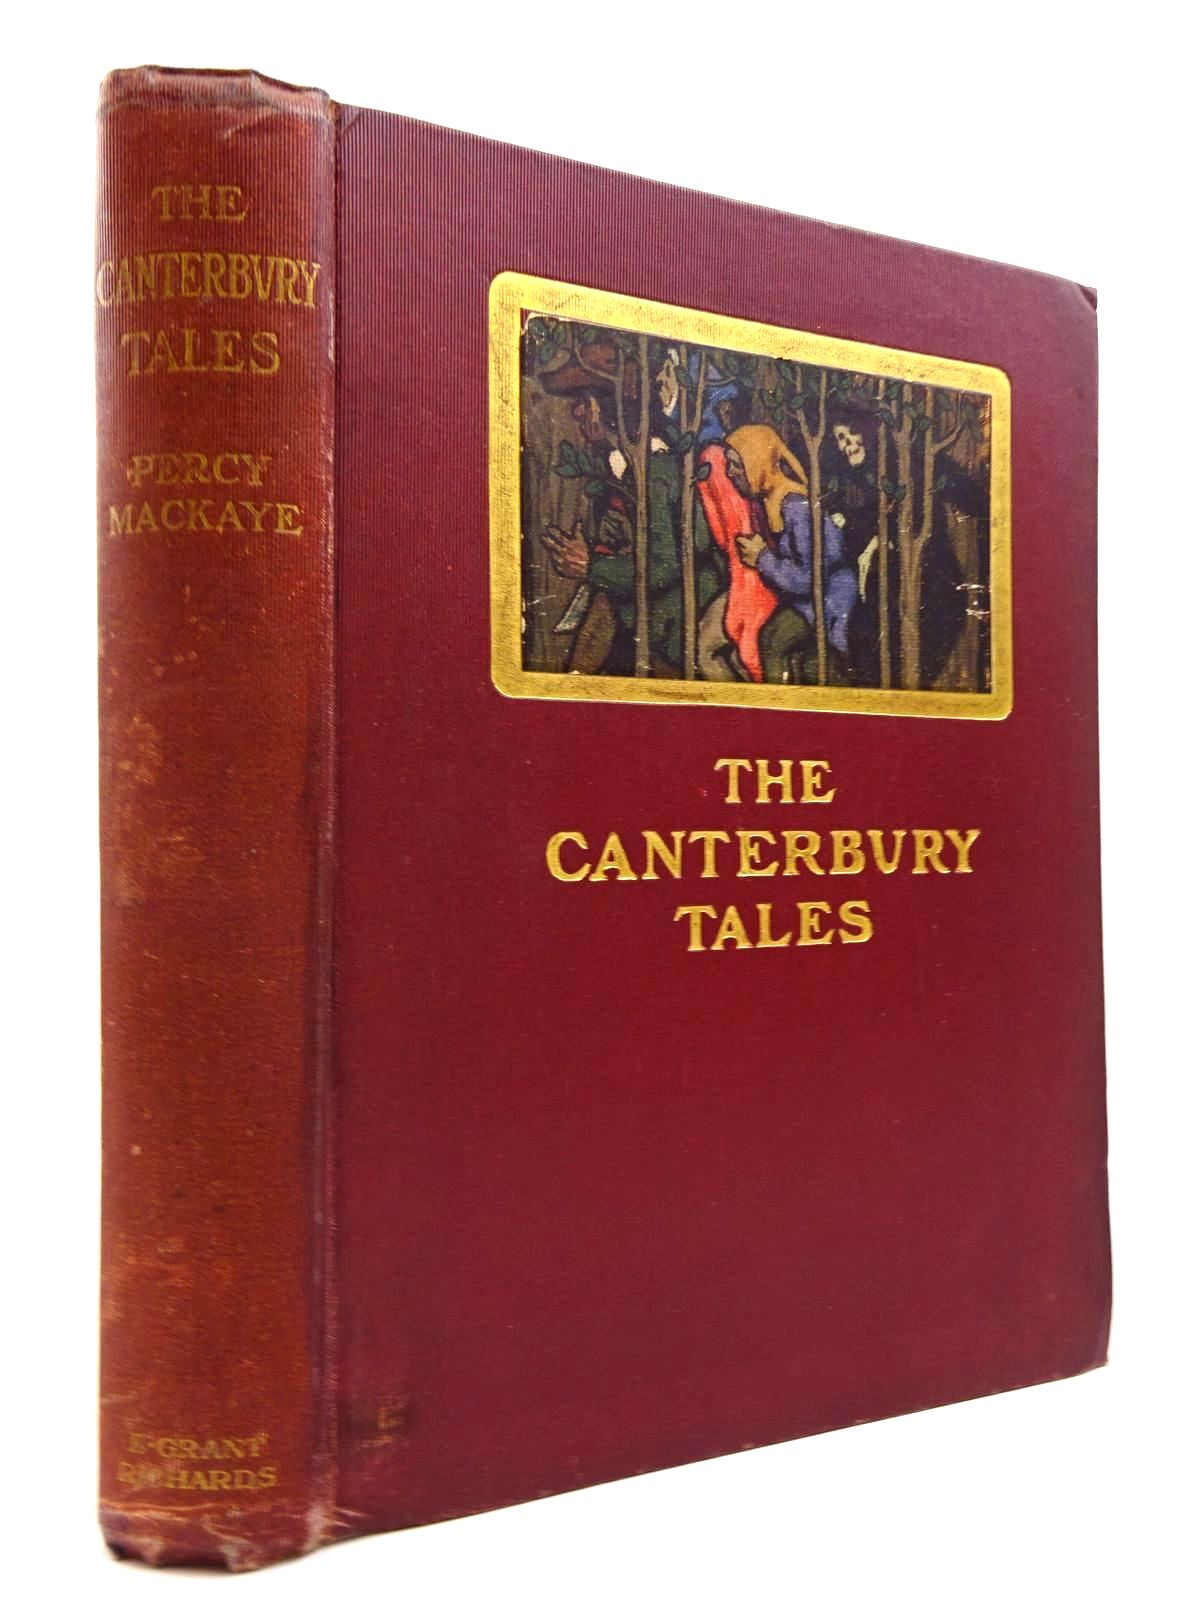 Photo of THE CANTERBURY TALES OF GEOFFREY CHAUCER written by Mackaye, Percy<br />Chaucer, Geoffrey illustrated by Clark, Walter Appleton published by E. Grant Richards (STOCK CODE: 2130745)  for sale by Stella & Rose's Books